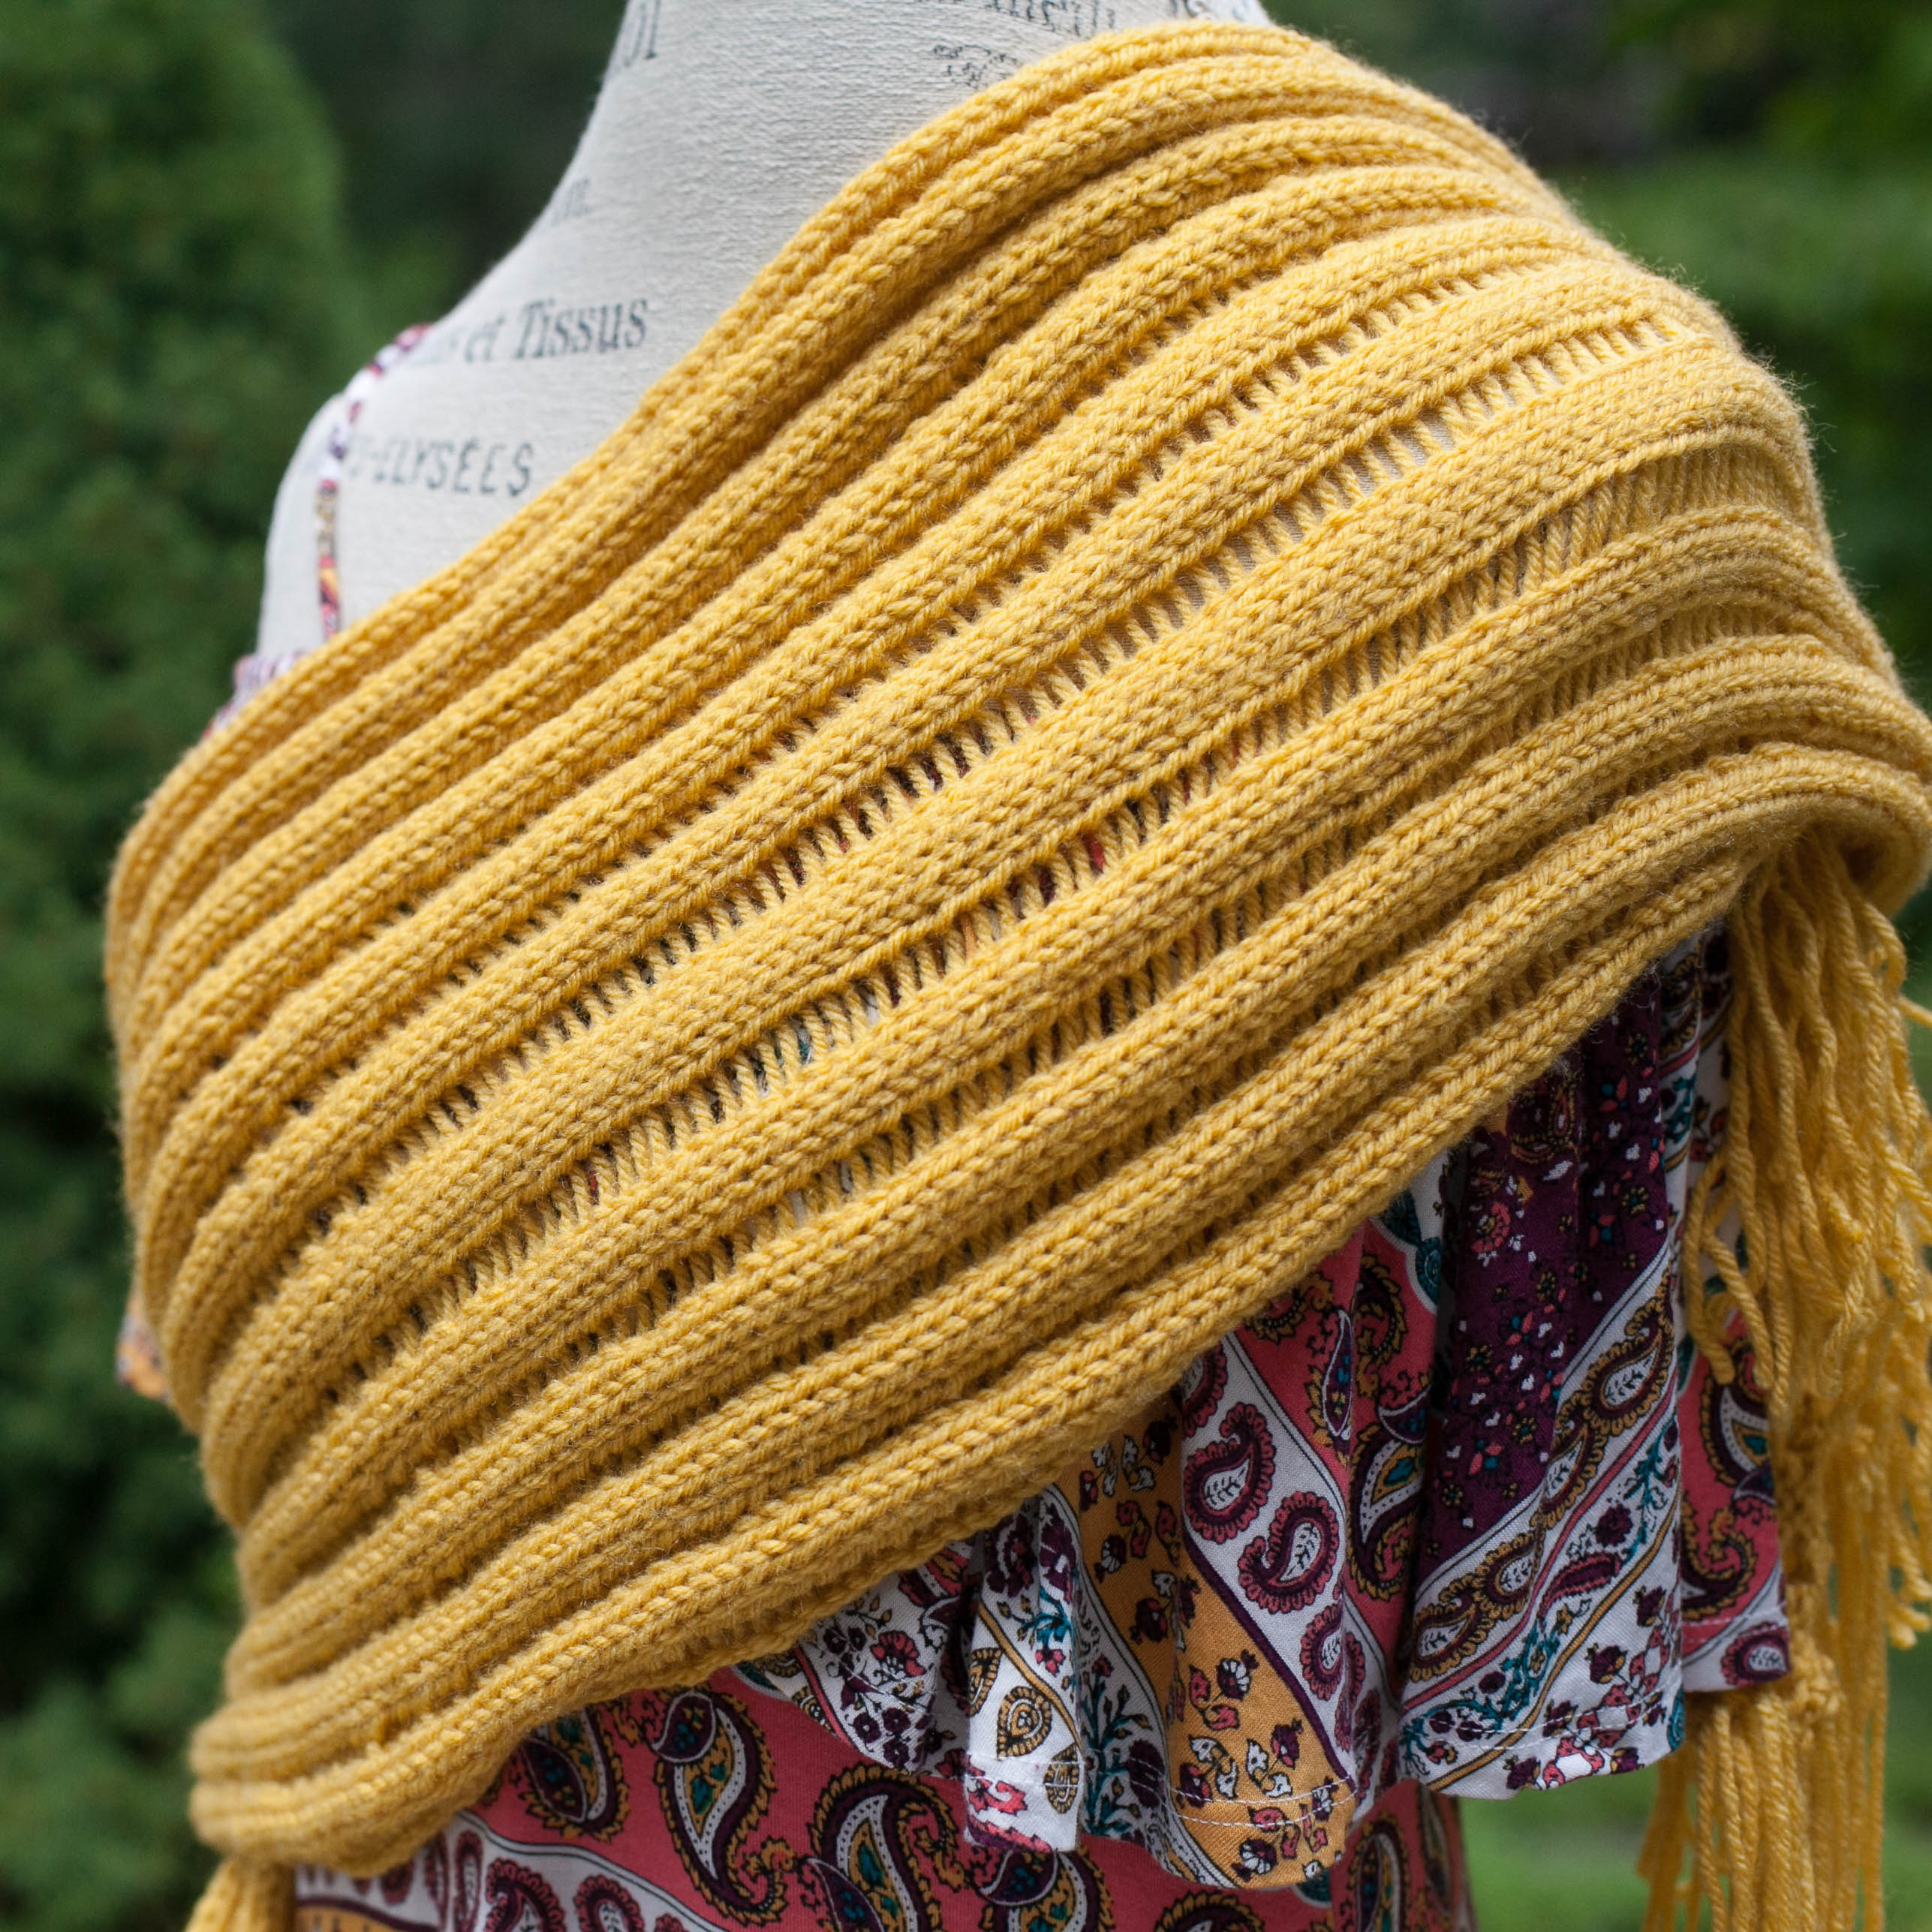 Knitting Loom Patterns For Scarves : Loom knit drop stitch scarf pattern this moment is good